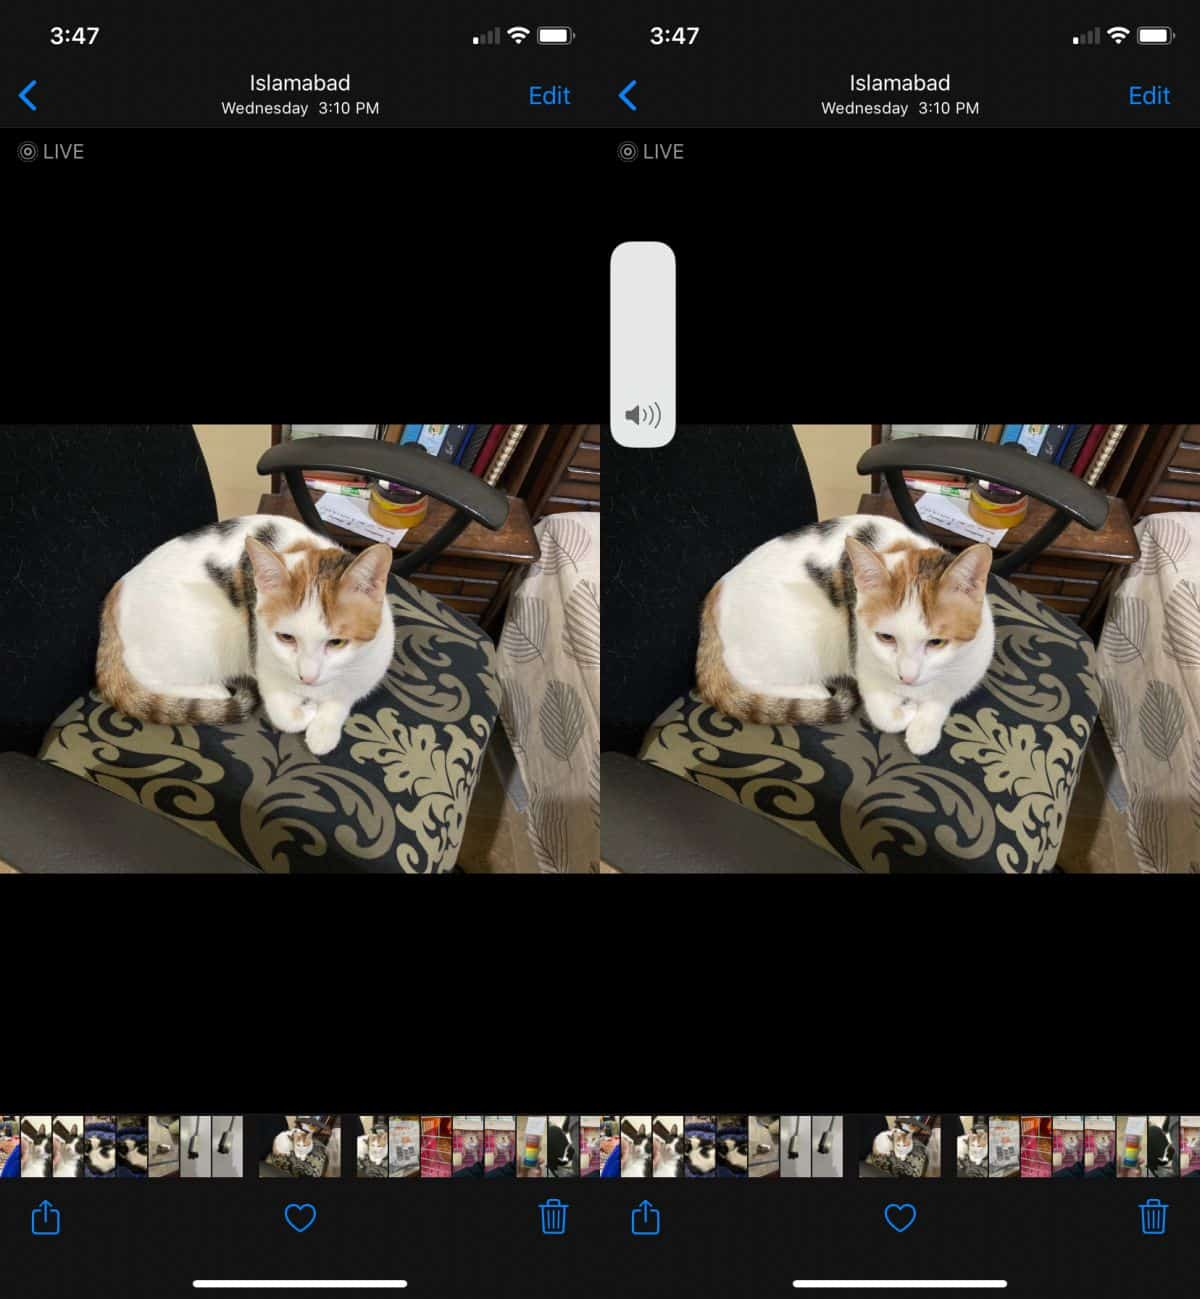 how to hear the sound recorded with a live photo on ios How to hear the sound recorded with a live photo on iOS